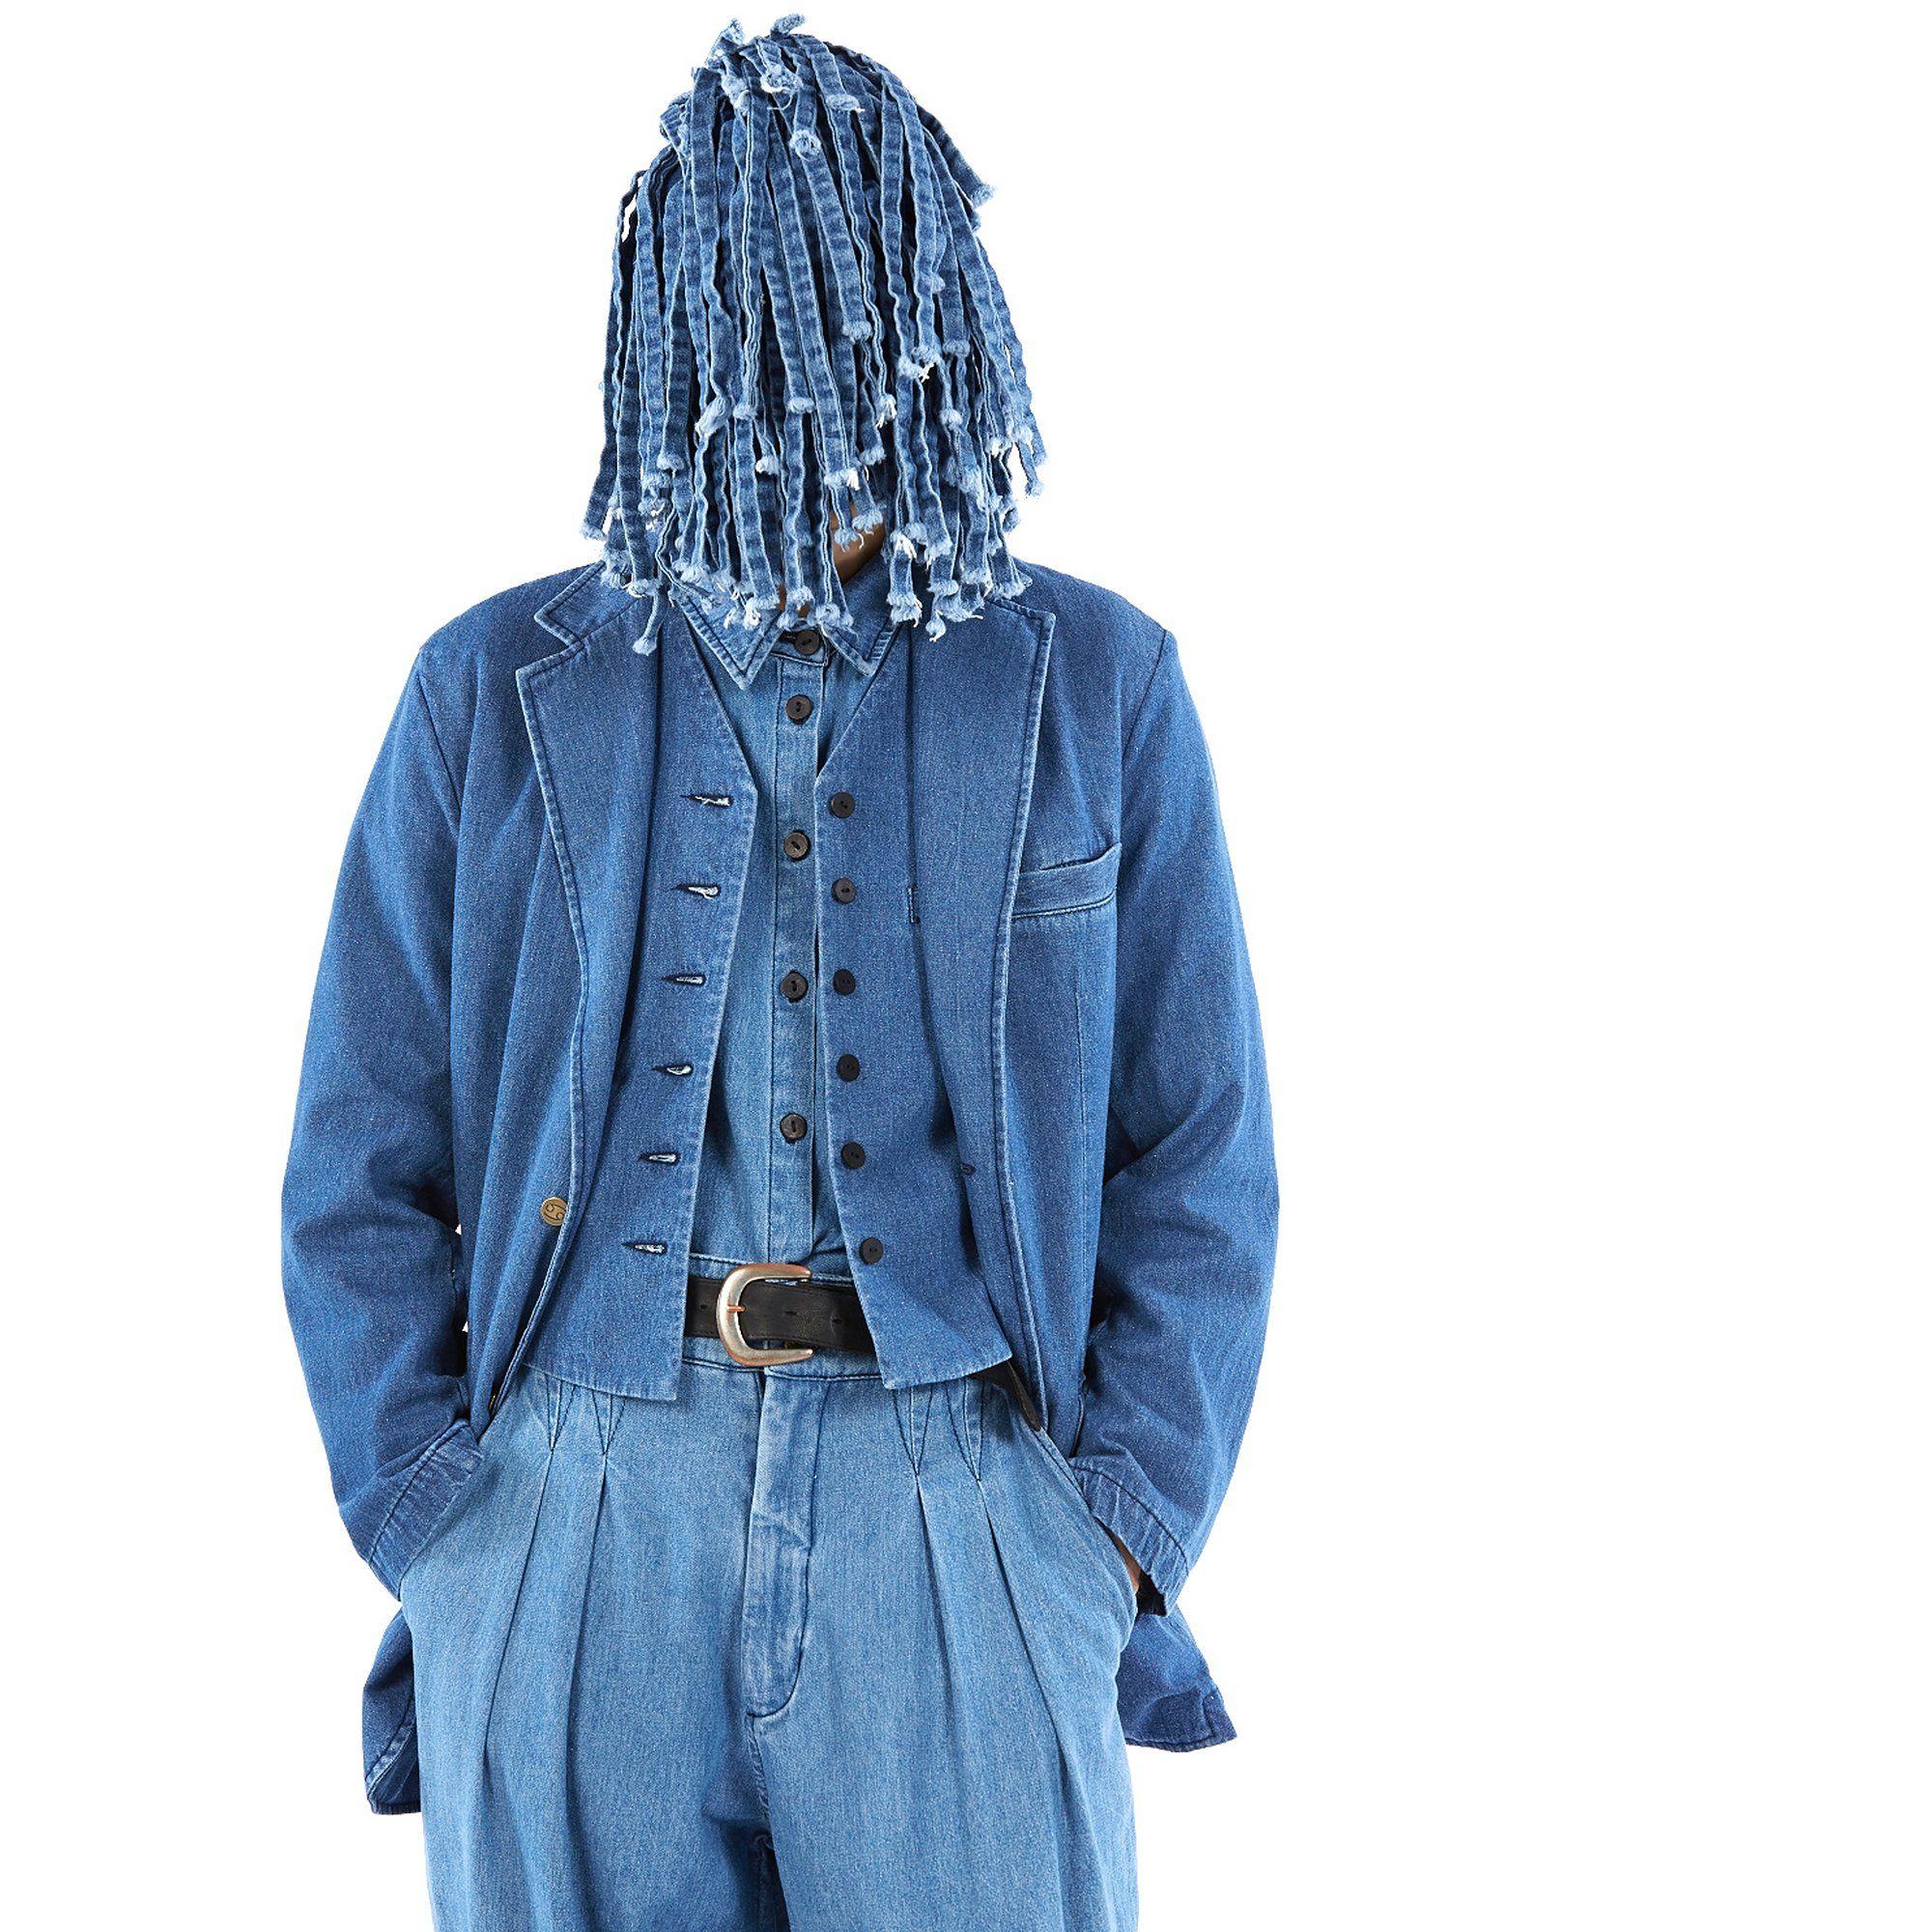 Weird Denim Clothes 1